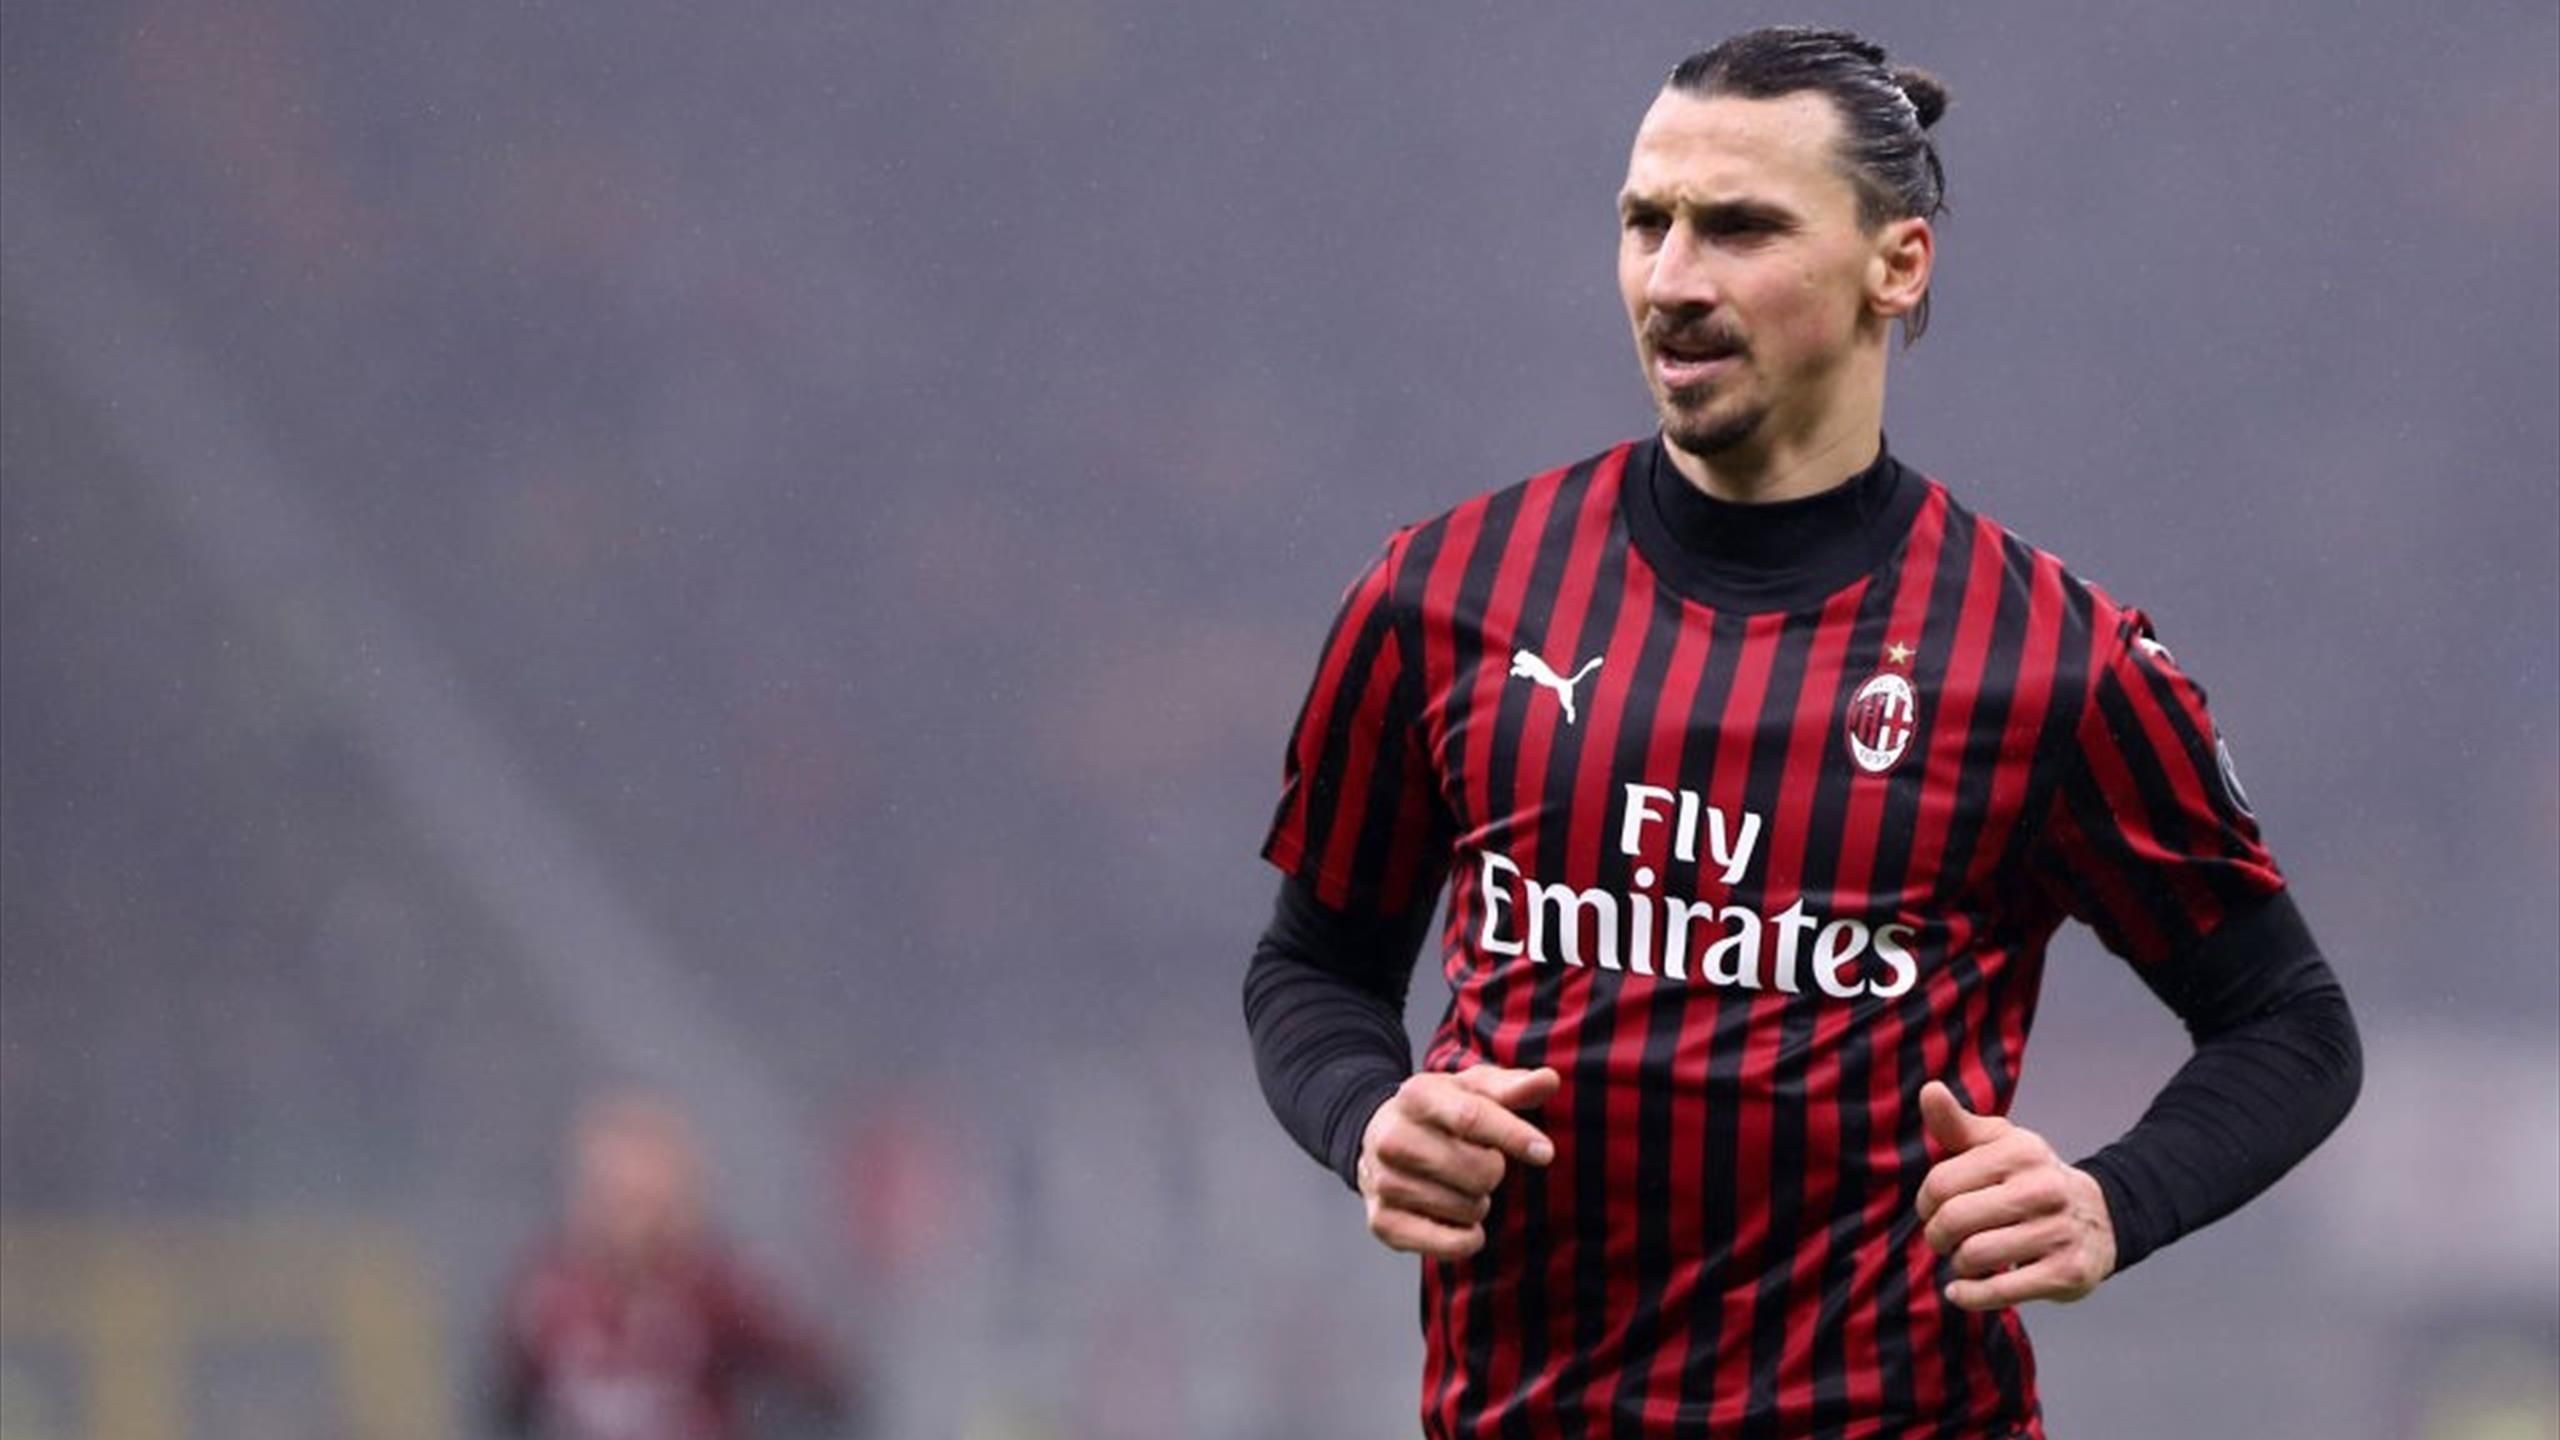 milan coach brushes off ibrahimovic s angry reaction to substitution